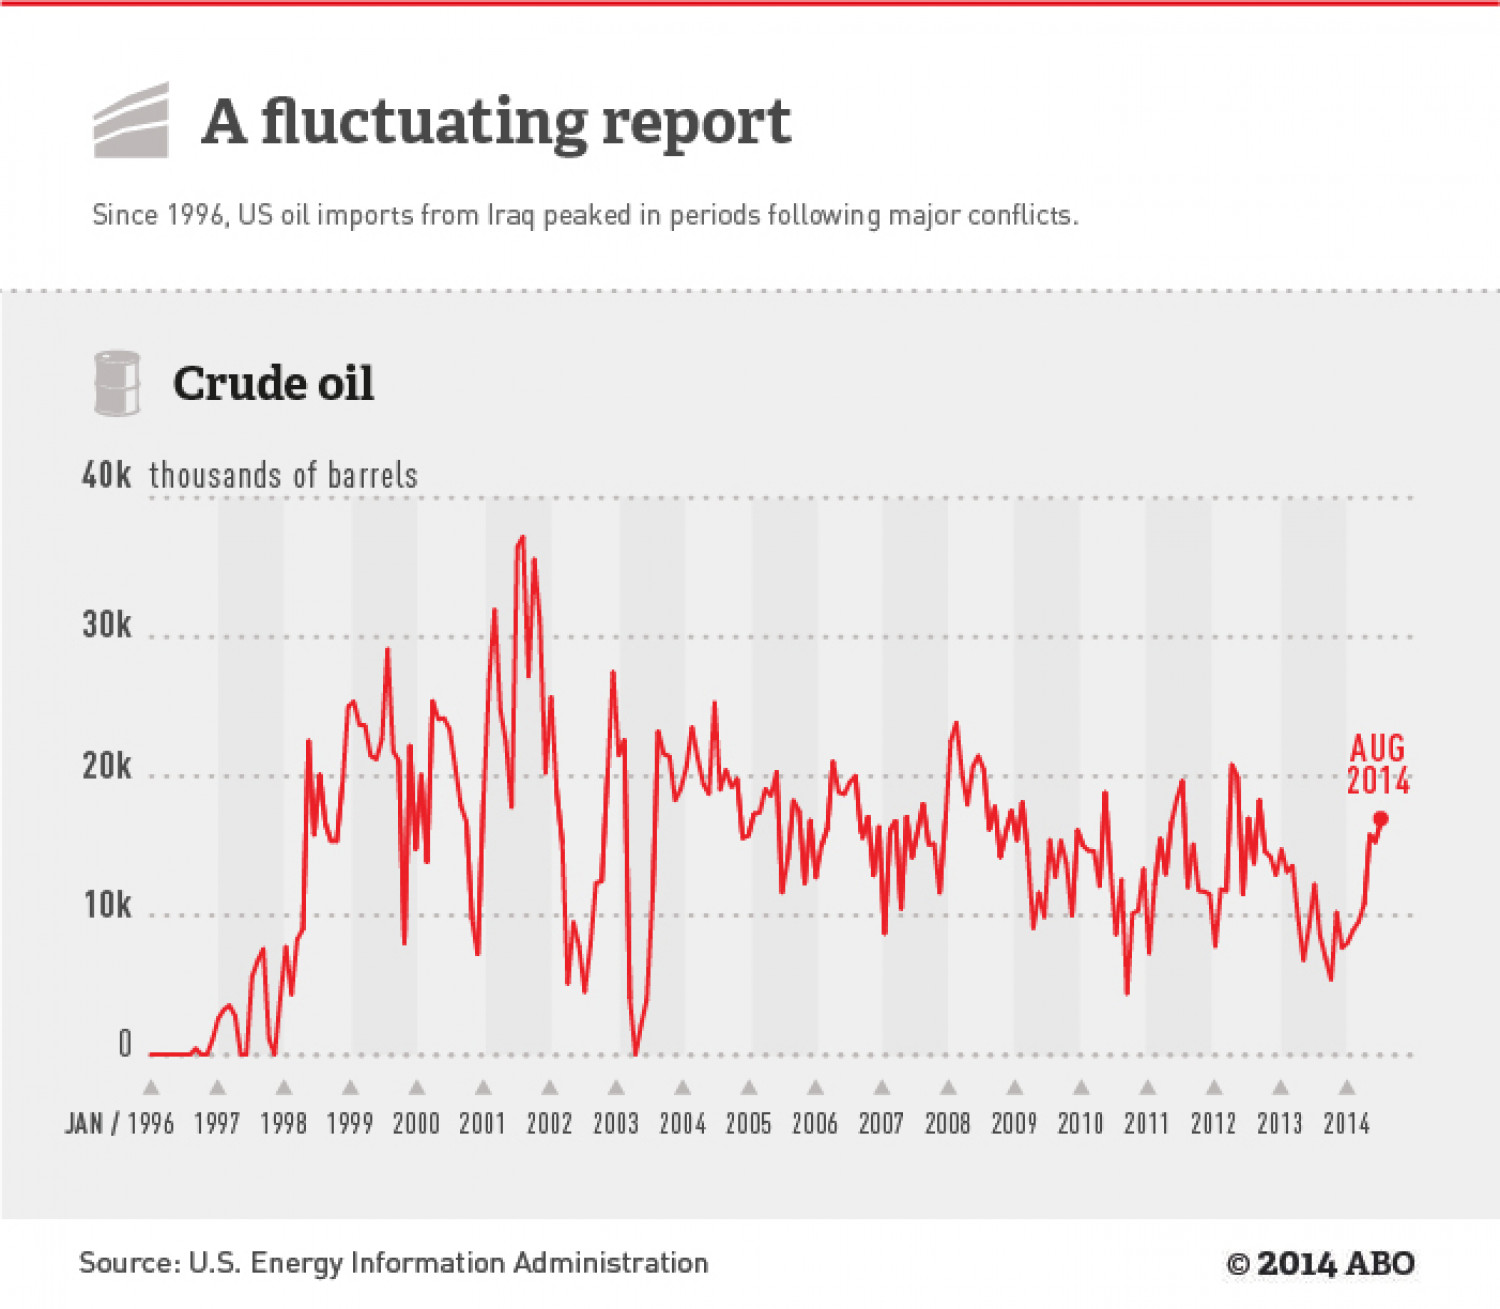 A fluctuating report Infographic